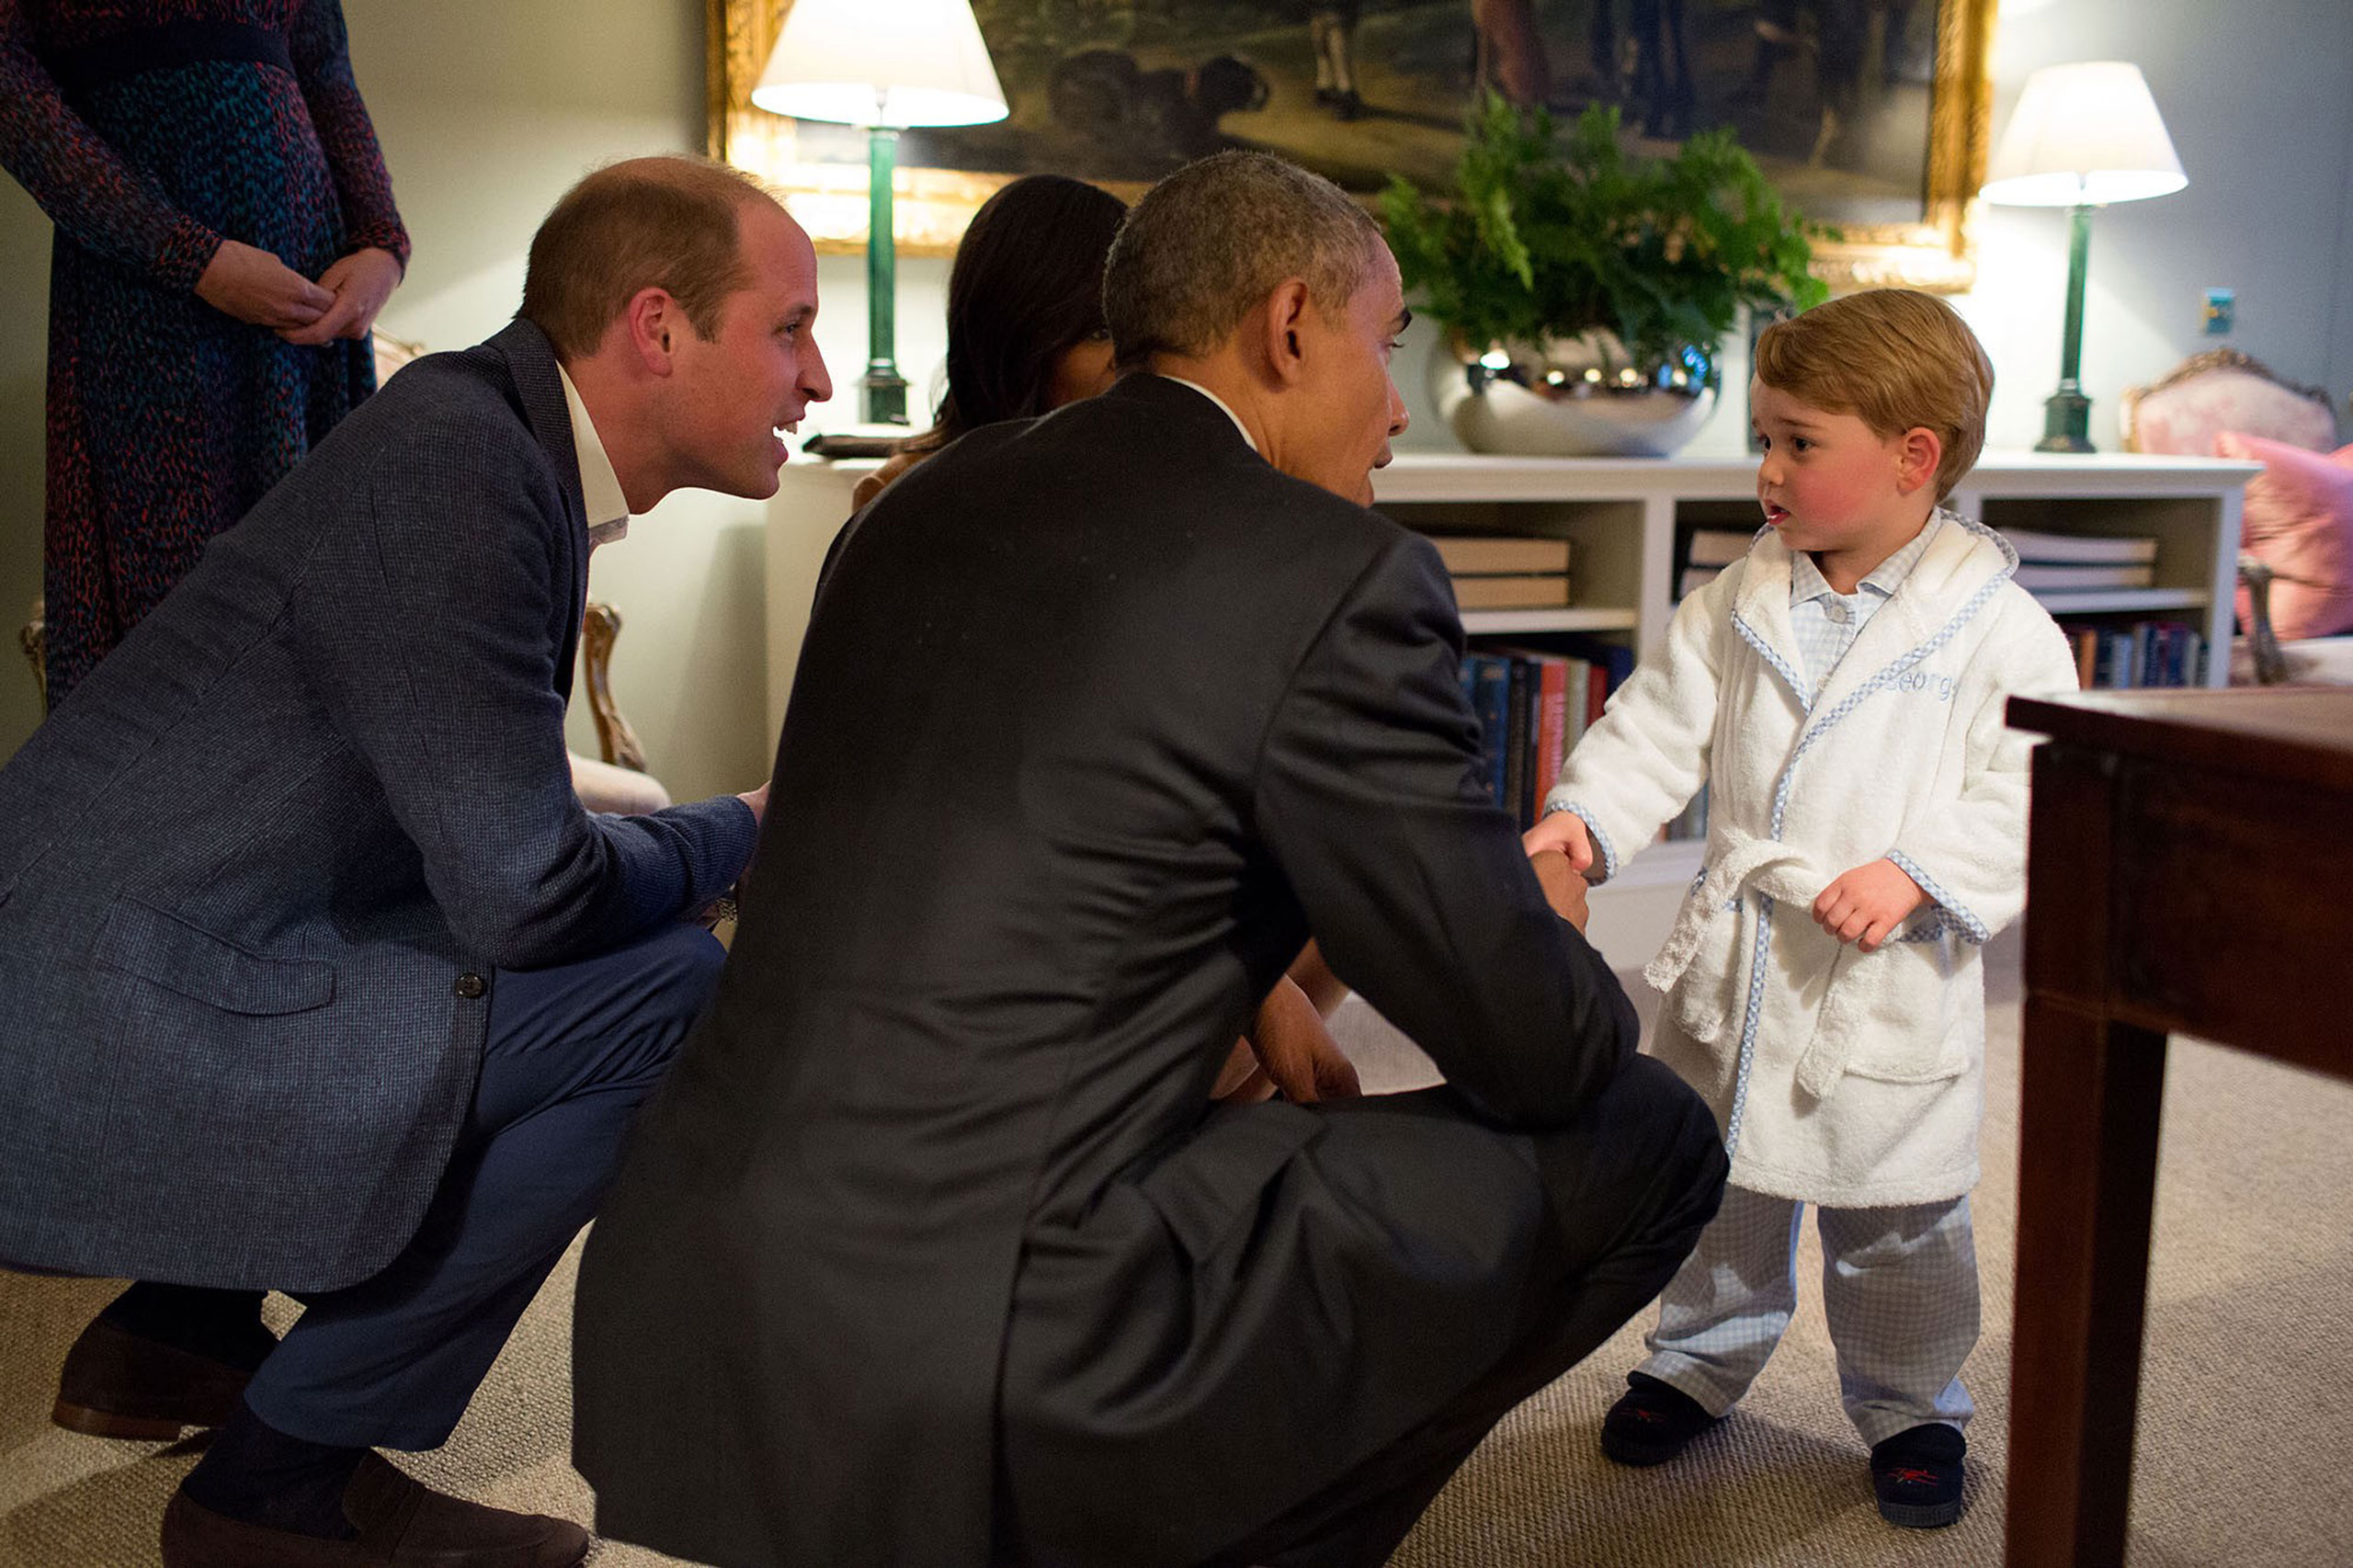 """""""Originally it was unclear whether I would be permitted to photograph the President meeting Prince George. But the night before, our advance team called and said they had gotten word from Kensington Palace that they would allow me access to make candid photographs during their visit. Afterwards, this photograph garnered the most attention but at the time all I could think was how the table at right was hindering my ability to be at the optimum angle for this moment, April 22, 2016."""""""